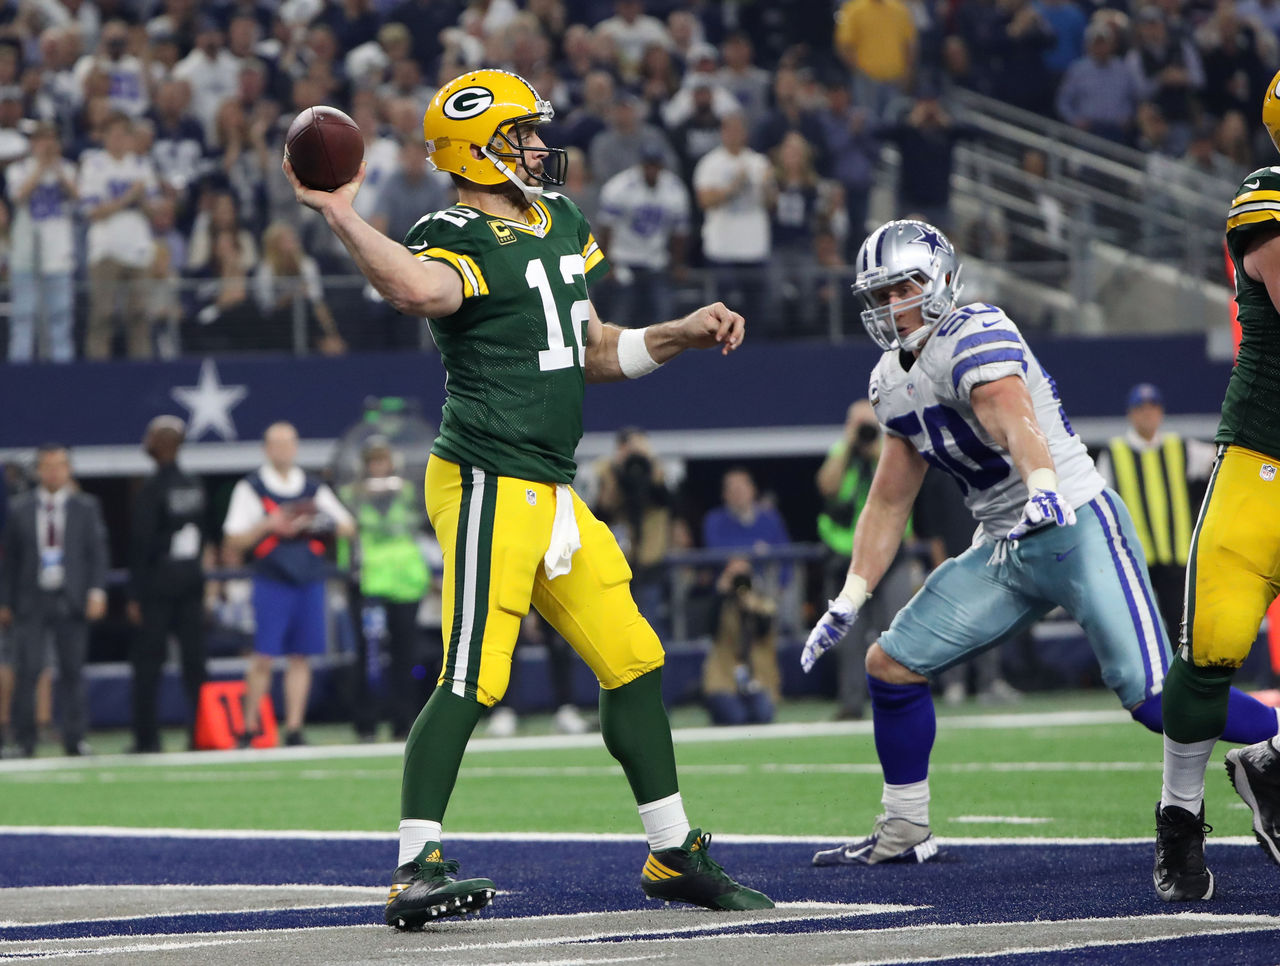 Cropped_2017-01-15t233006z_1166591221_nocid_rtrmadp_3_nfl-nfc-divisional-green-bay-packers-at-dallas-cowboys